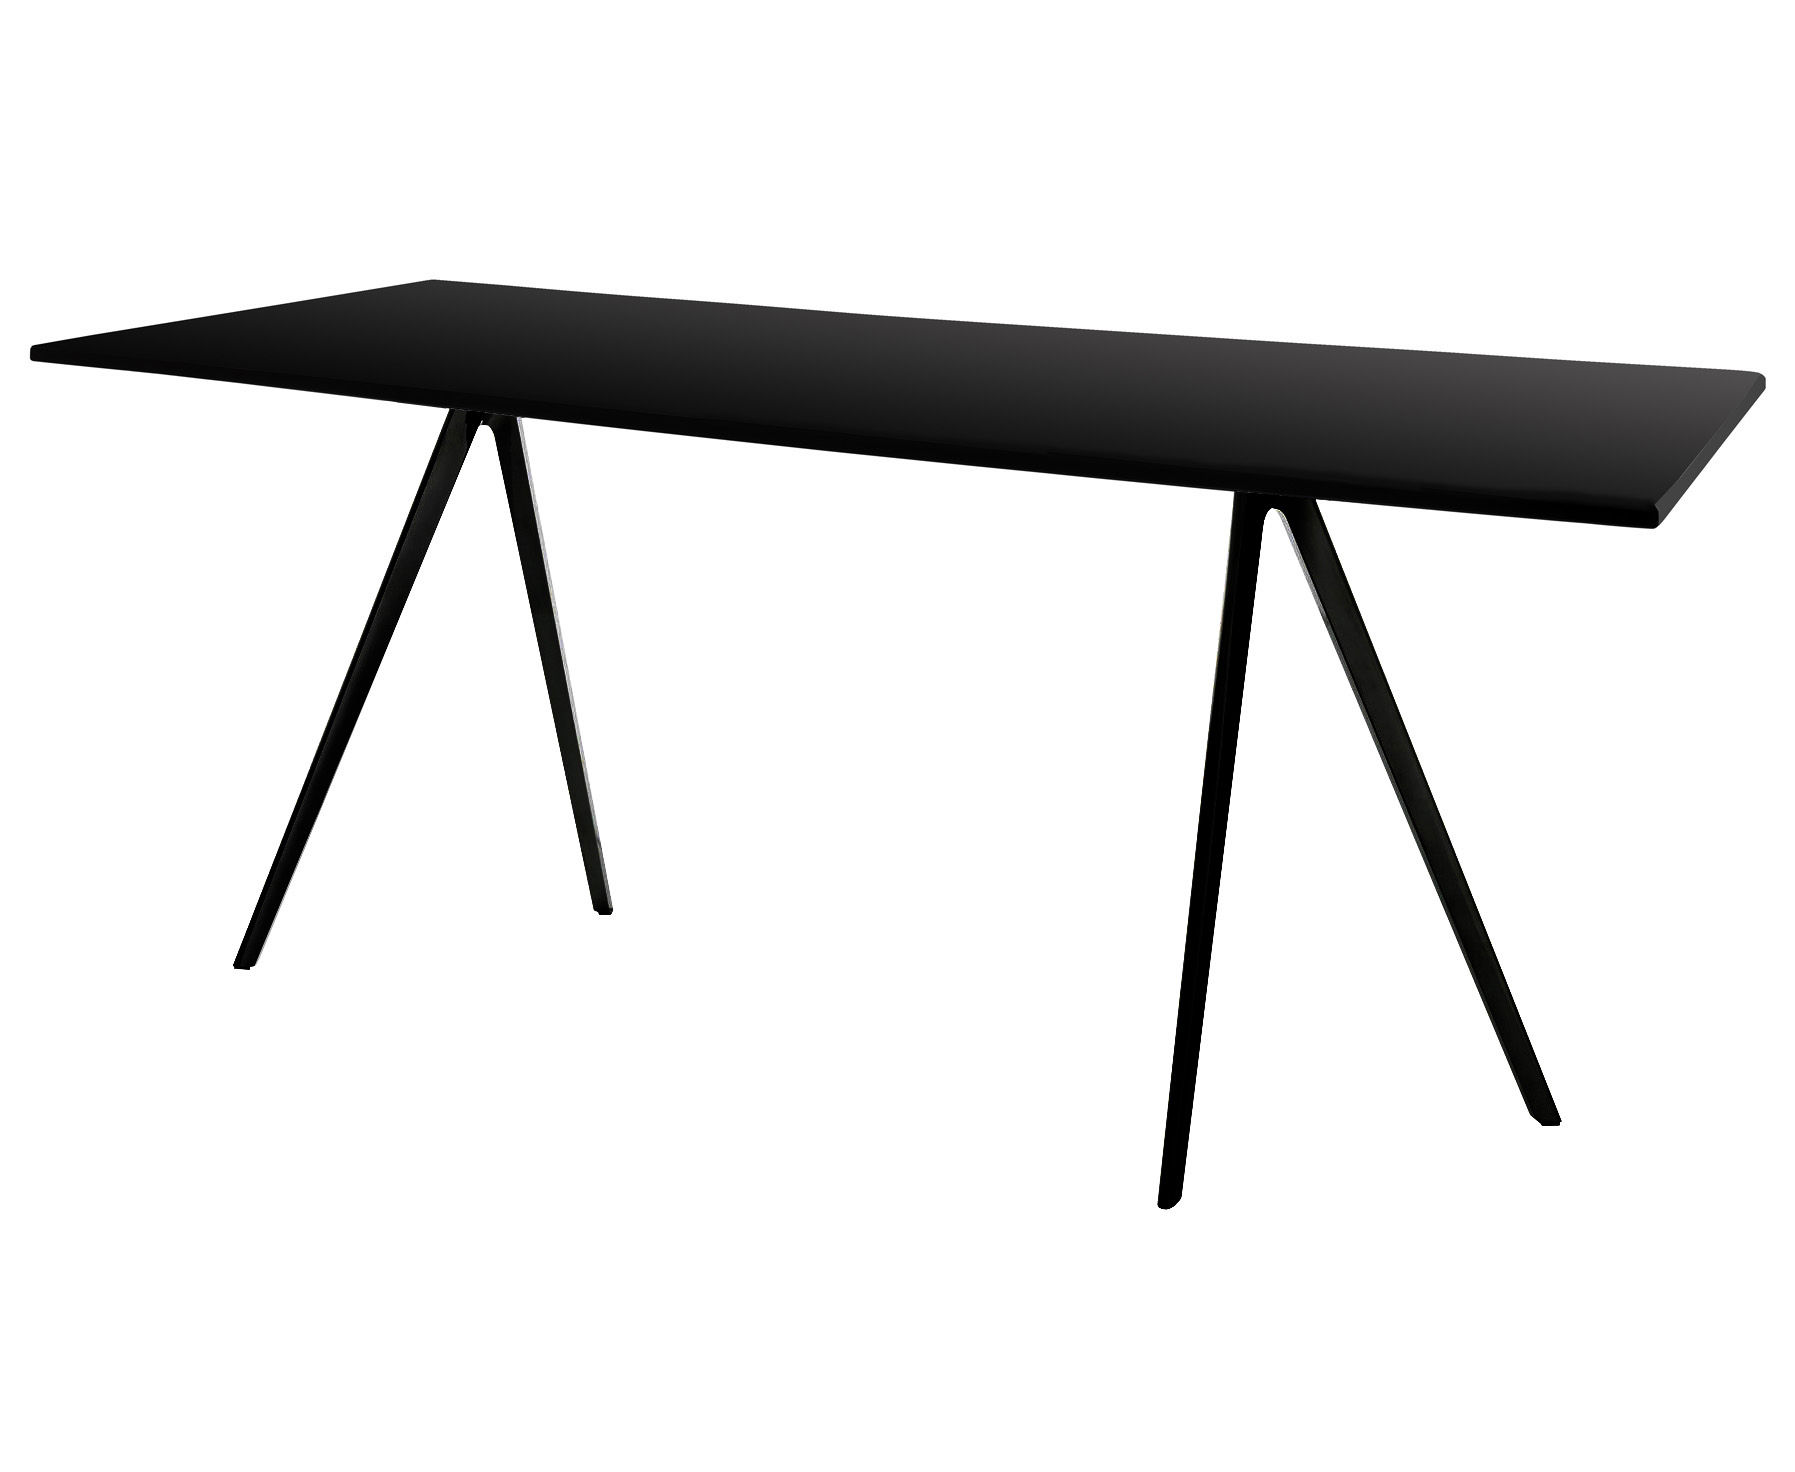 Trends - Must-haves Office - Baguette Table - 161 x 85 cm - MDF top by Magis - Black legs / Black MDF top - Lacquered MDF, Varnished cast aluminium